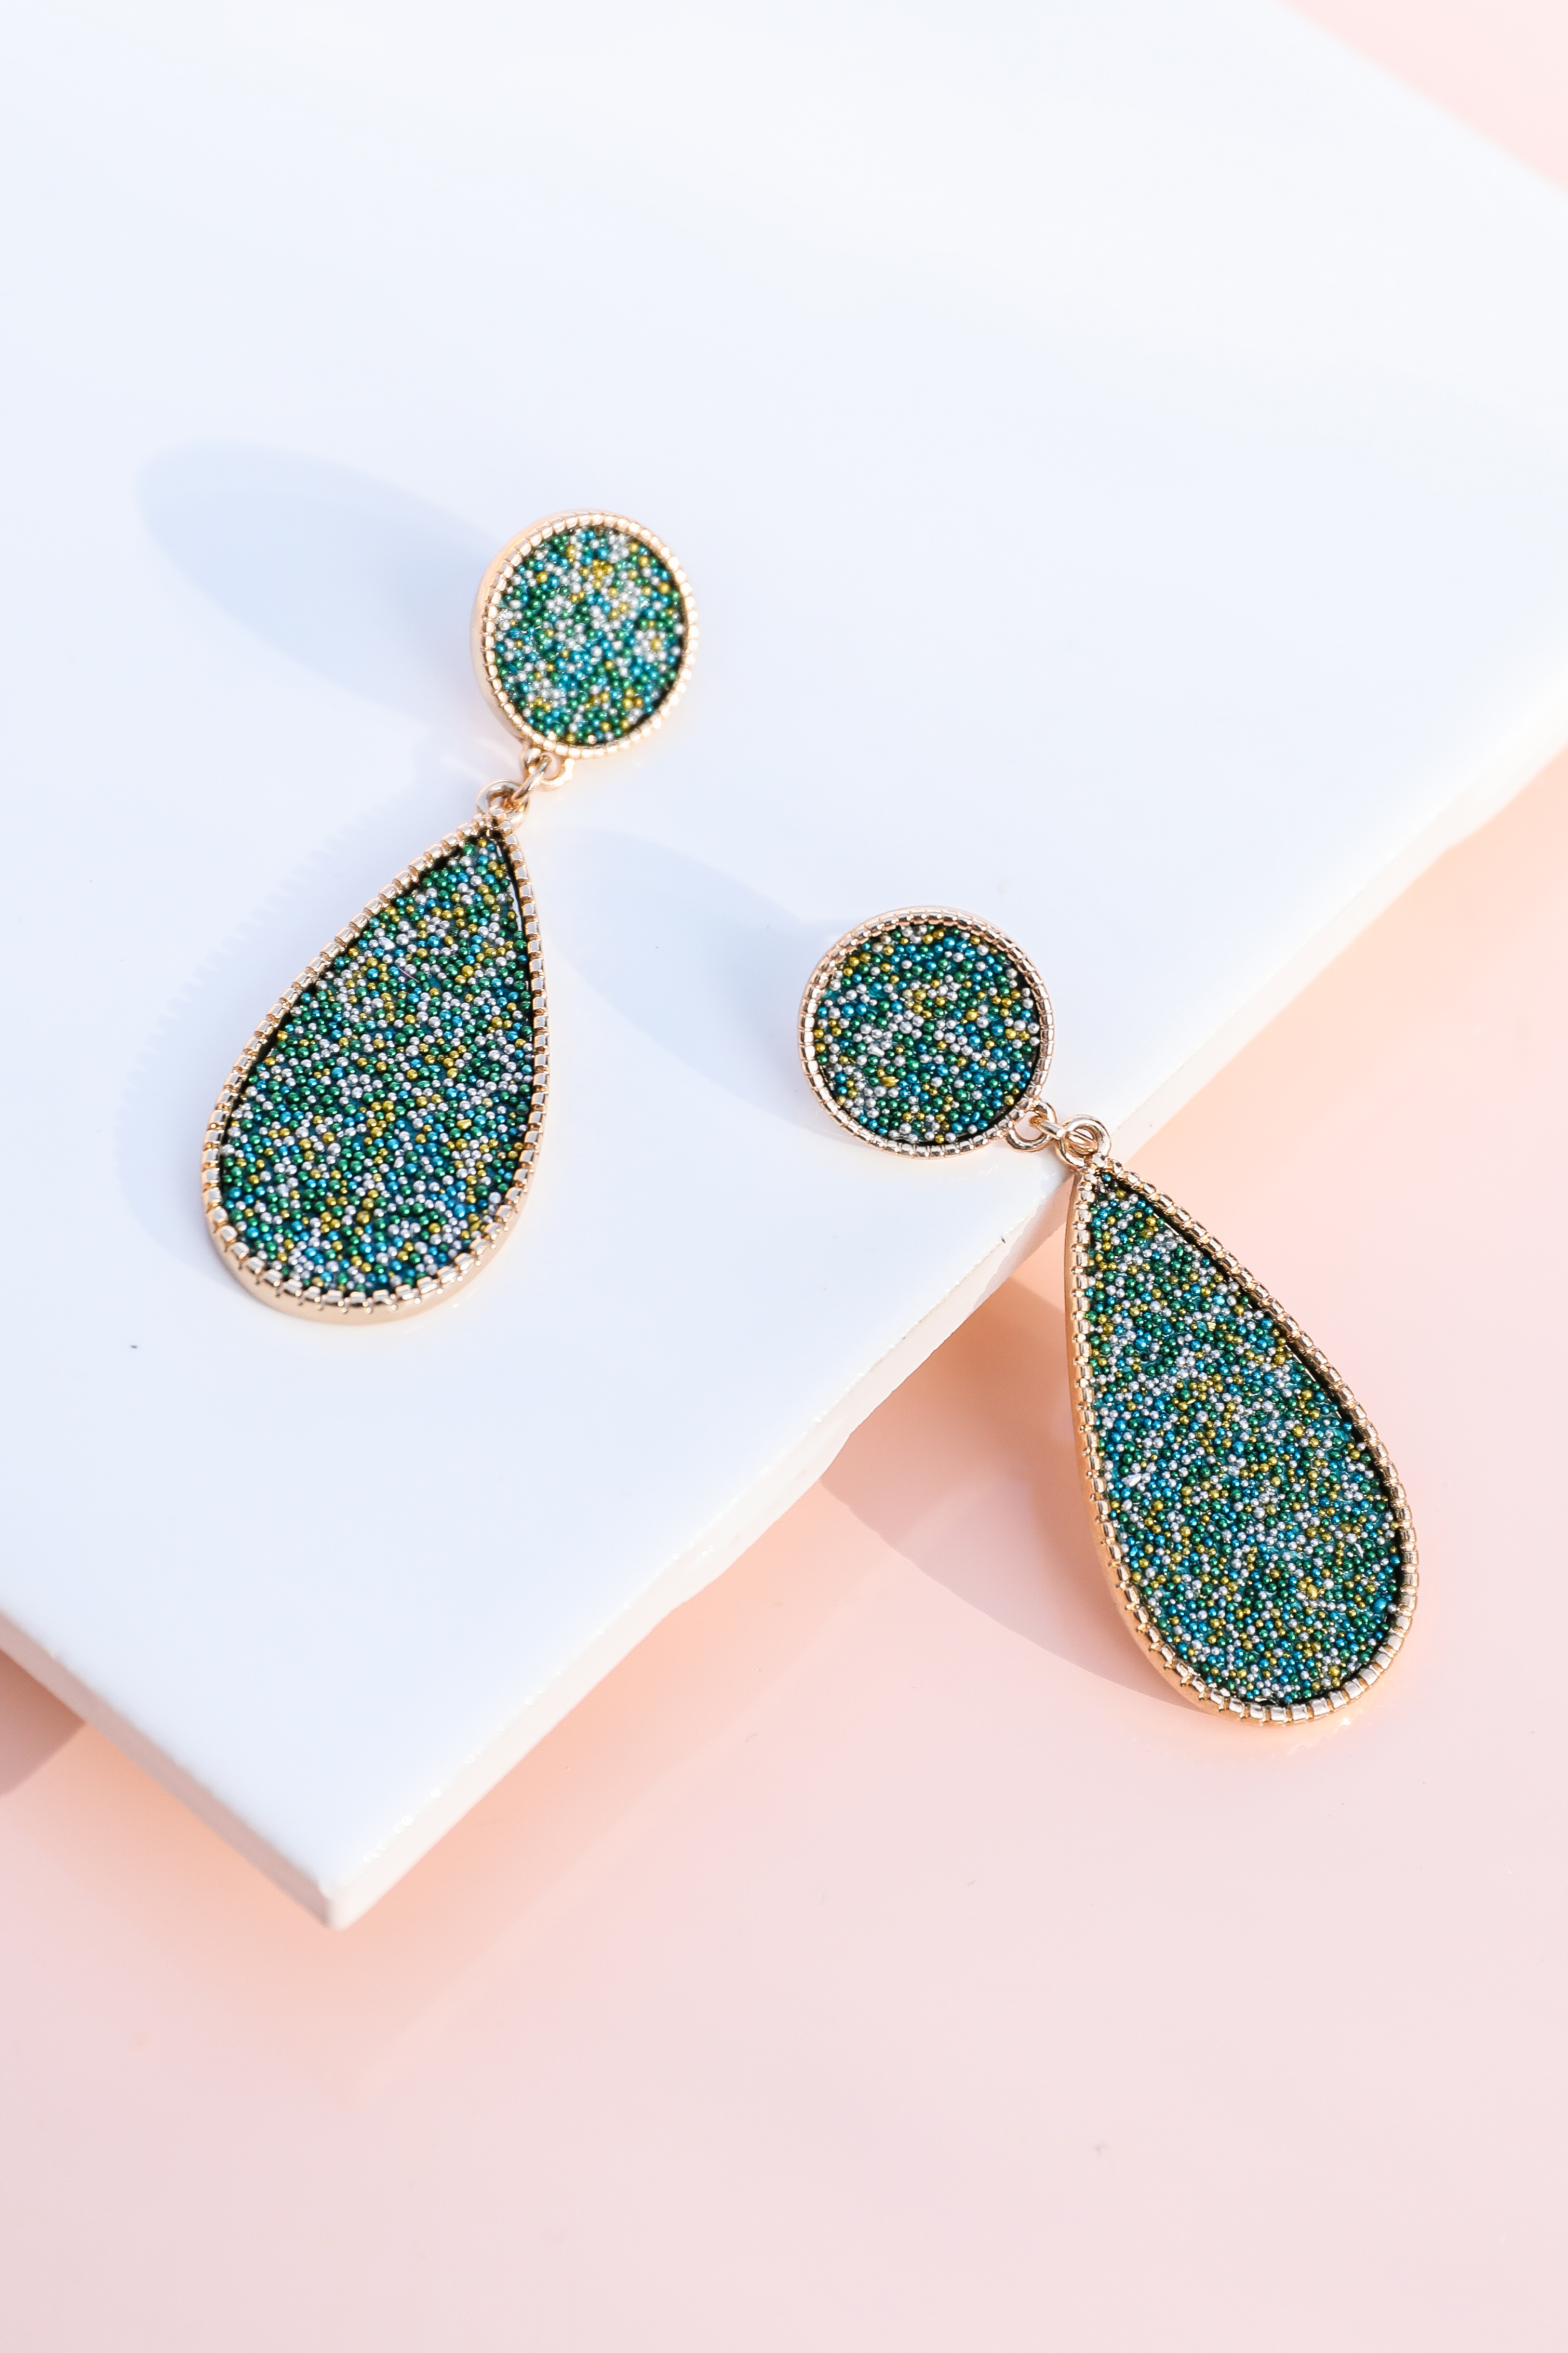 Teal and Gold Tear Drop Earrings with Tiny Bead Detail